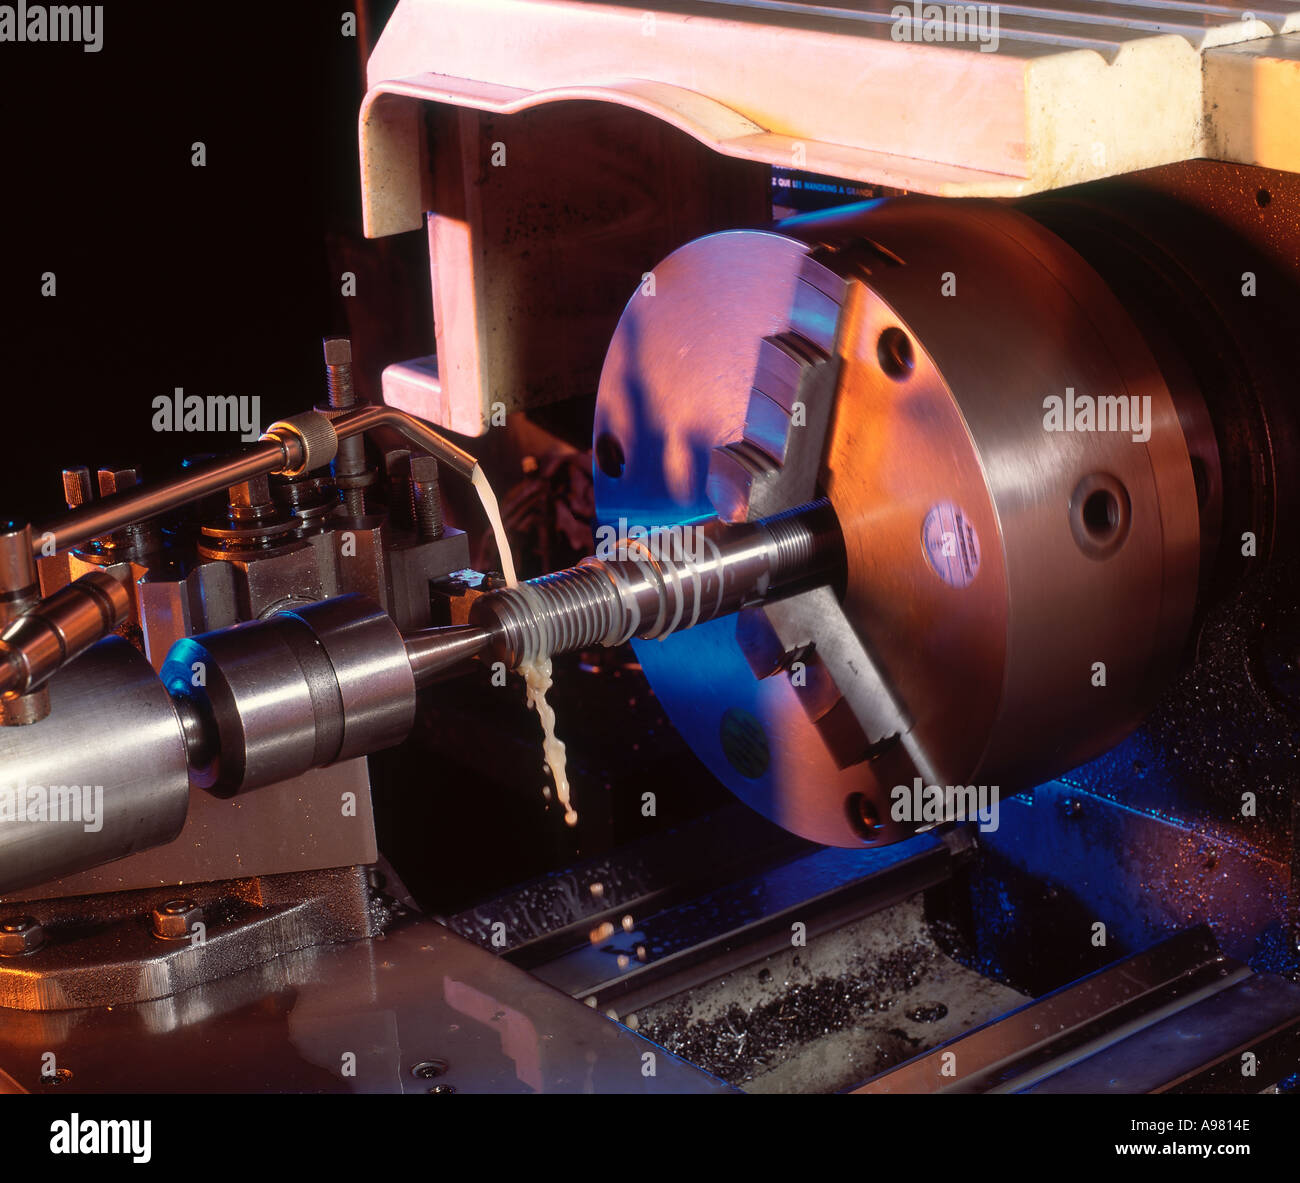 CLOSE UP VIEW OF LATHE CHUCK SHOWING CUTTING OF SCREW THREAD - Stock Image